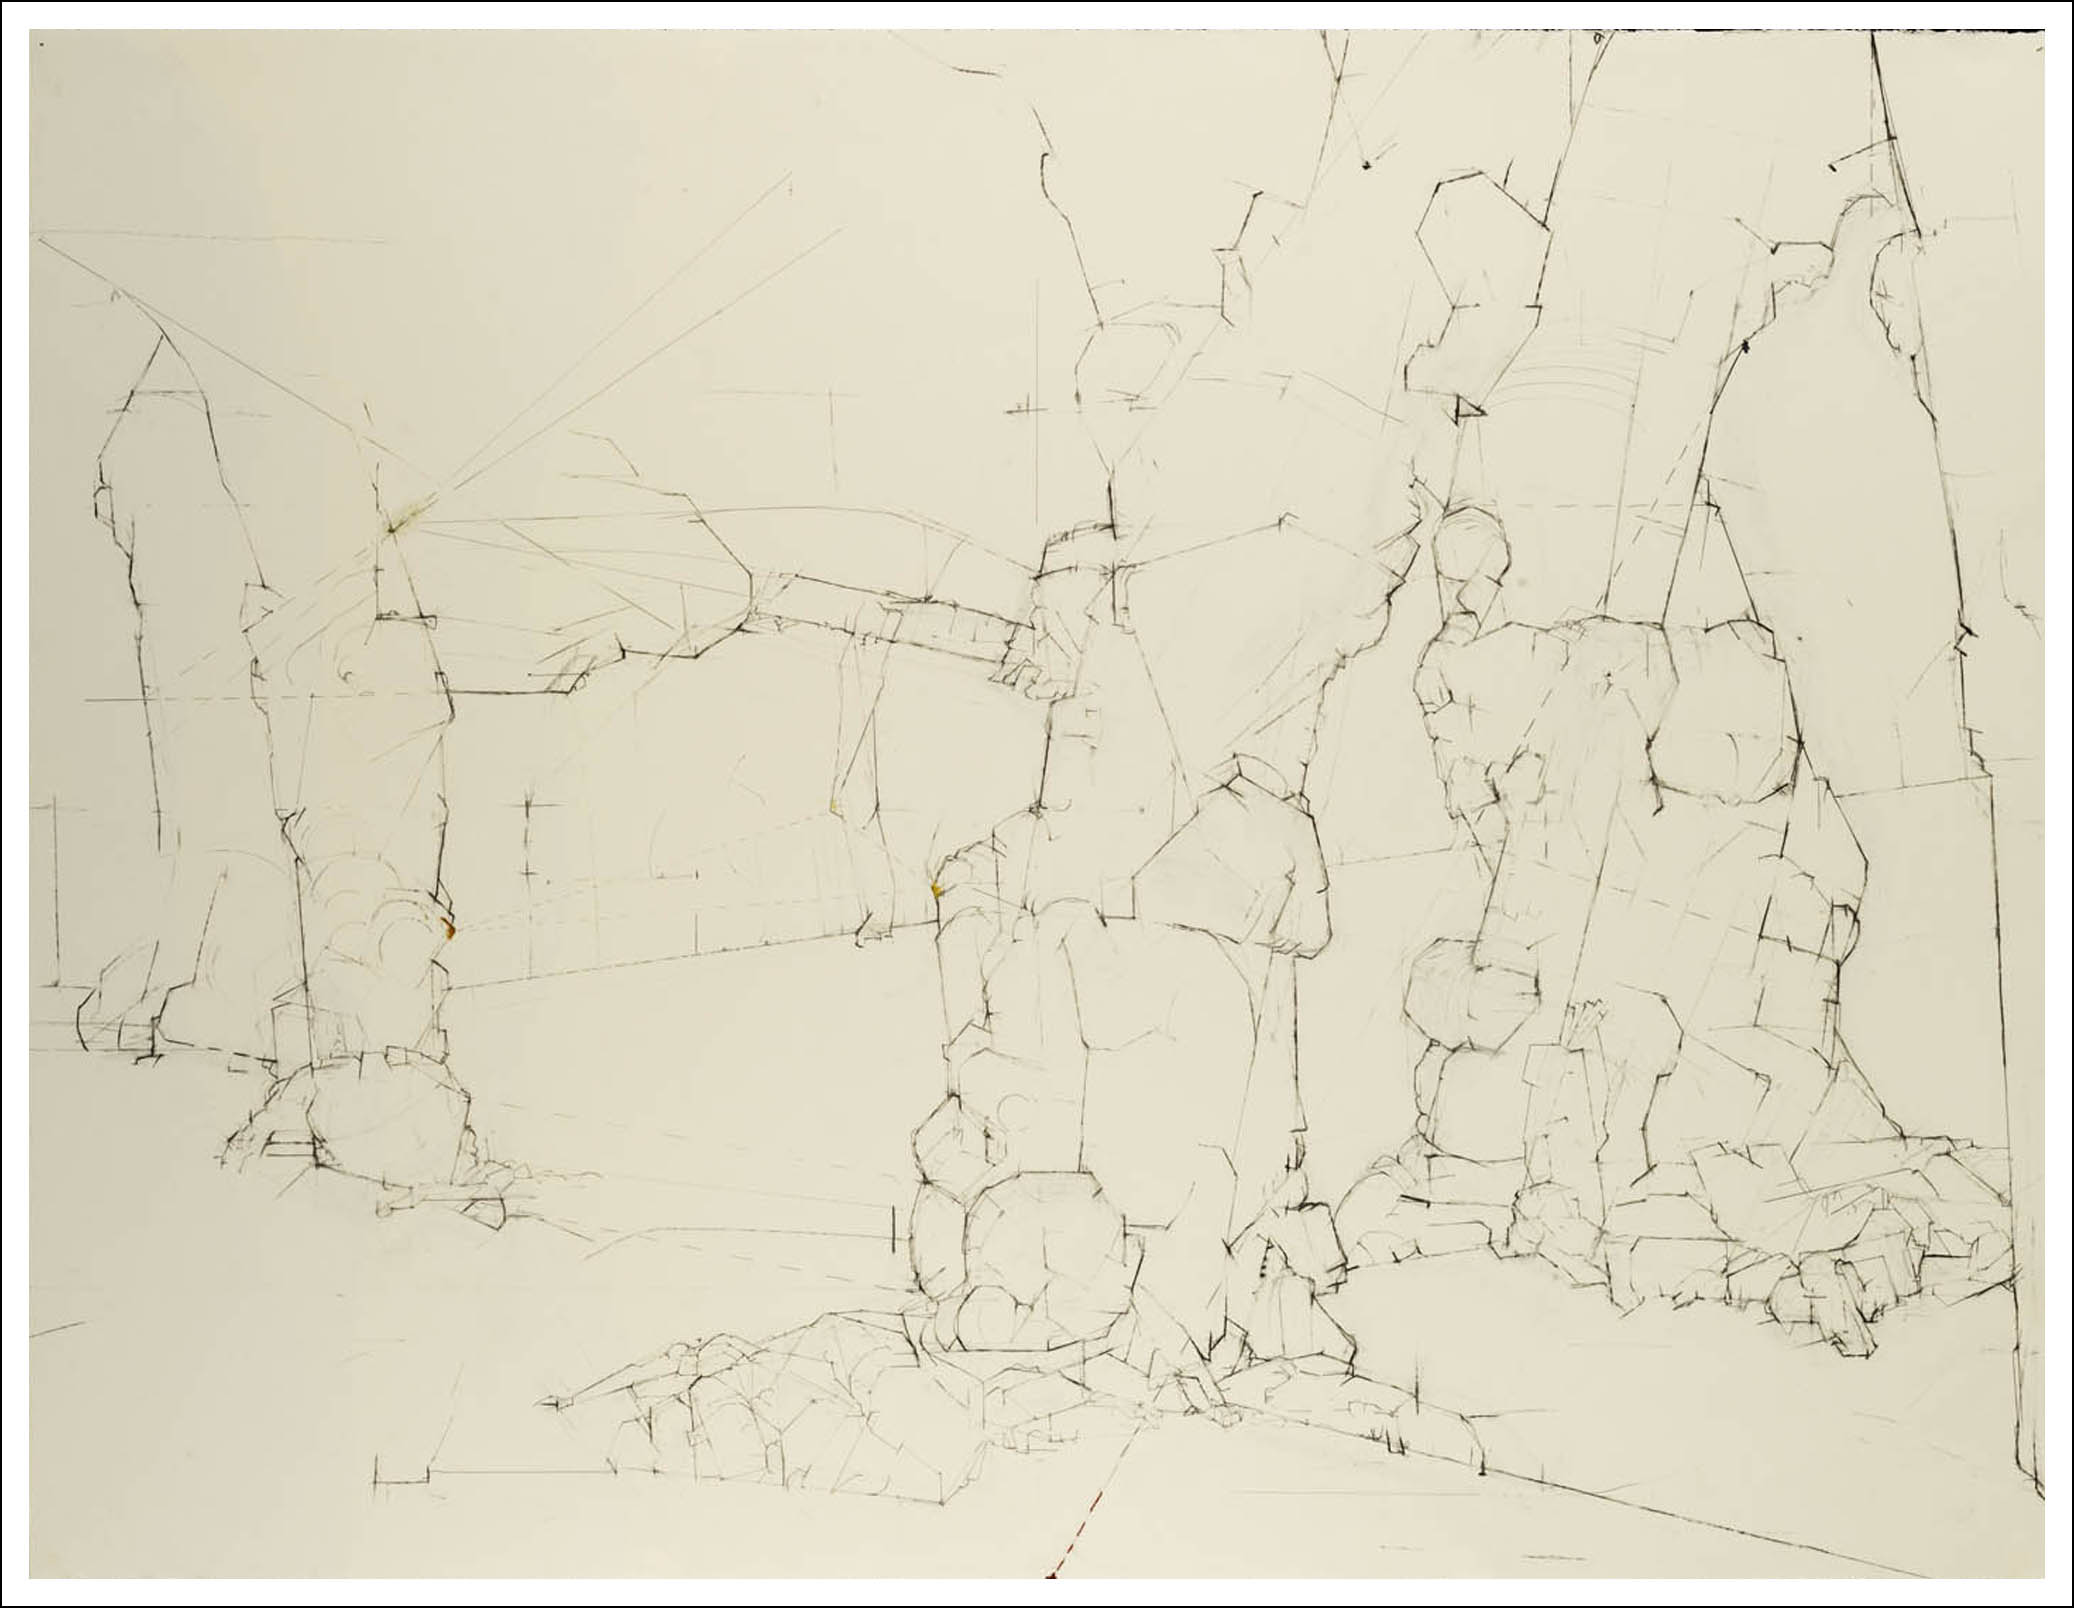 """Prunus Yedoensis (236°) 40° 47' 00.6"""" N 073° 57' 35.1"""" W,  2006, Charcoal, pencil on paper (38.25 inches x 50 inches) SOLD"""